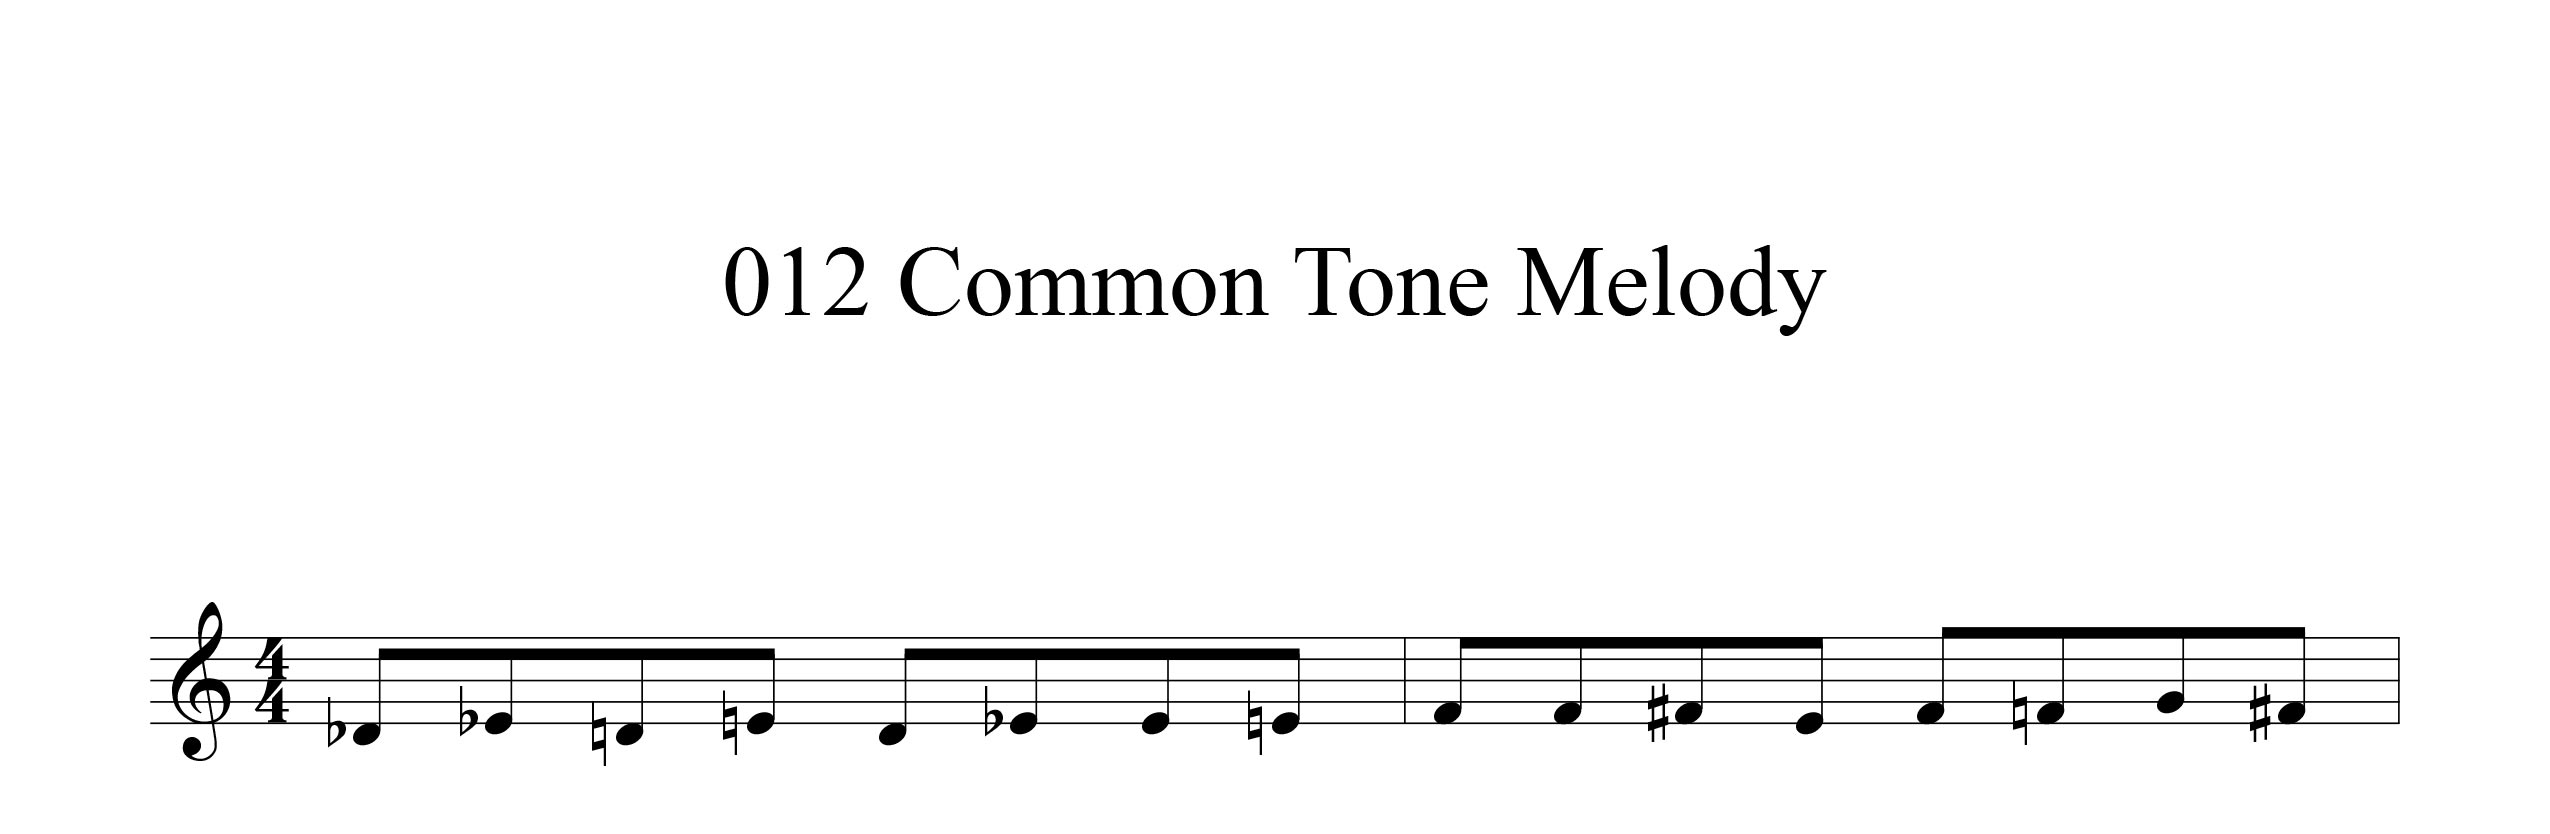 Melodic-Modulation-3-note-groups-Example-two-using-common-tone-improvisation-by-bruce-arnold-for-muse-eek-publishing-inc.